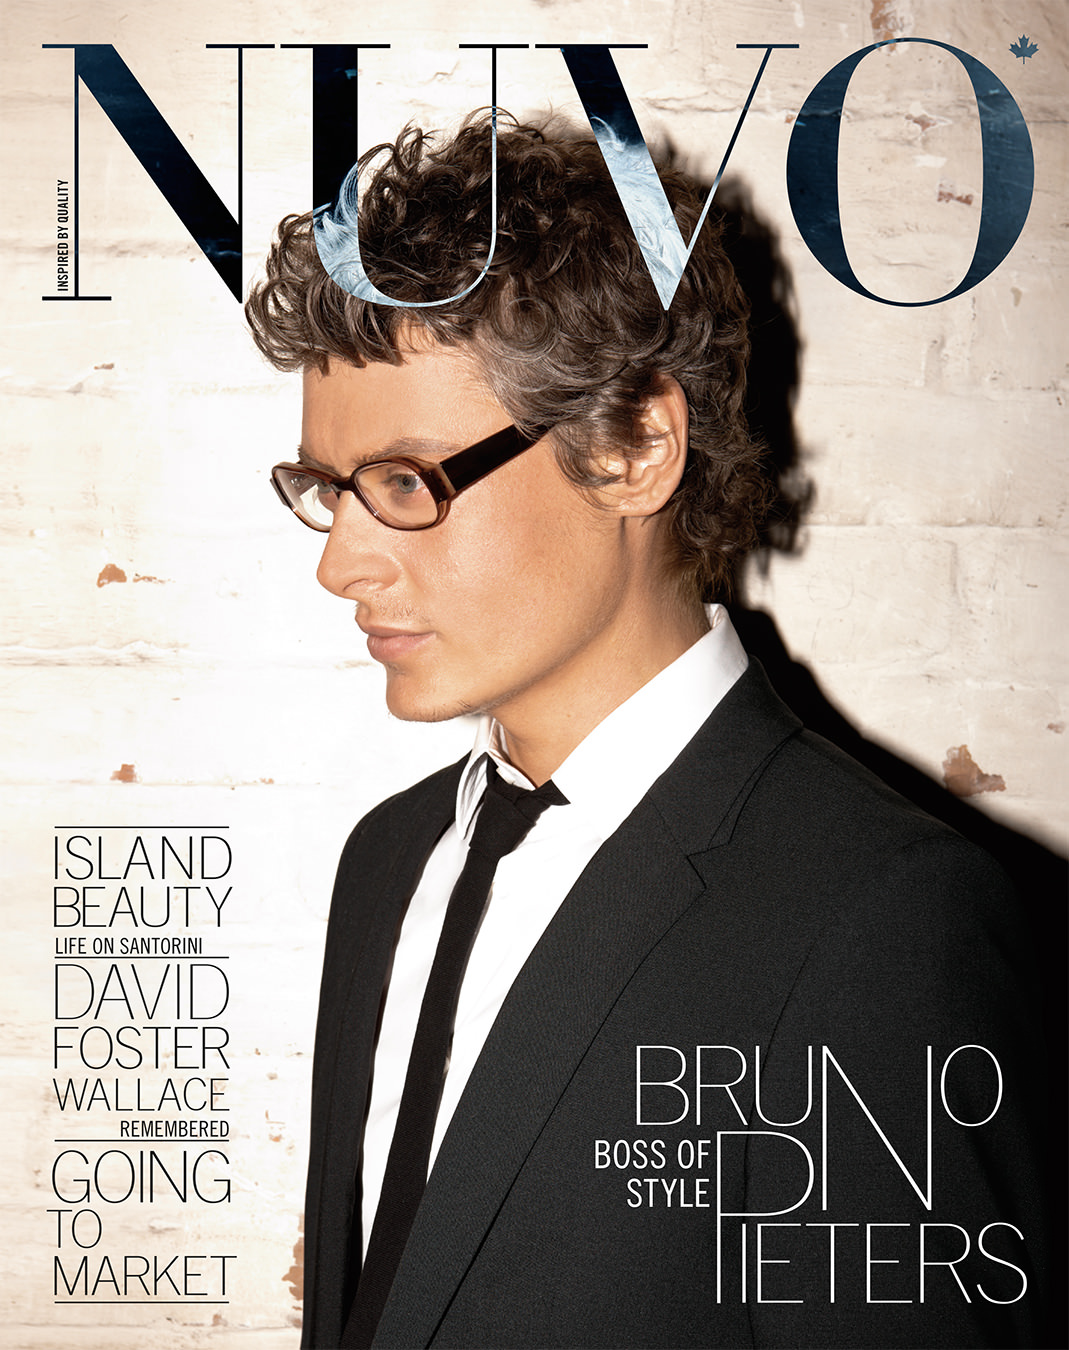 NUVO Magazine Spring 2009 Cover featuring Bruno Pieters